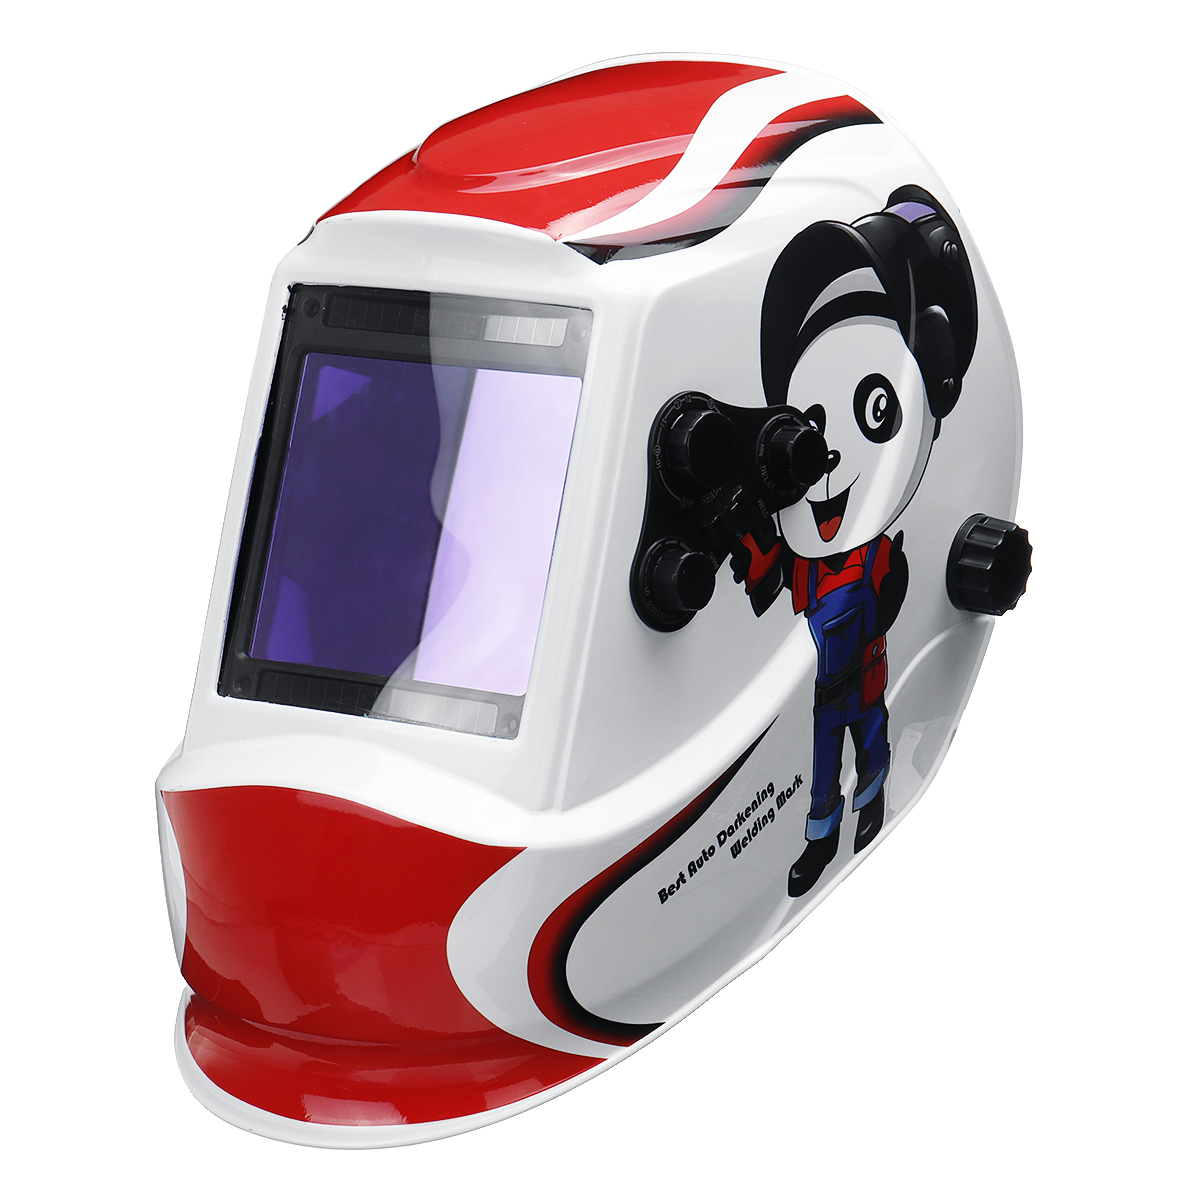 Panda Big Window 4 Sensors for External Adjustment Solar Automatic Dimming Welding Mask Welding Helmet Din5-Din13